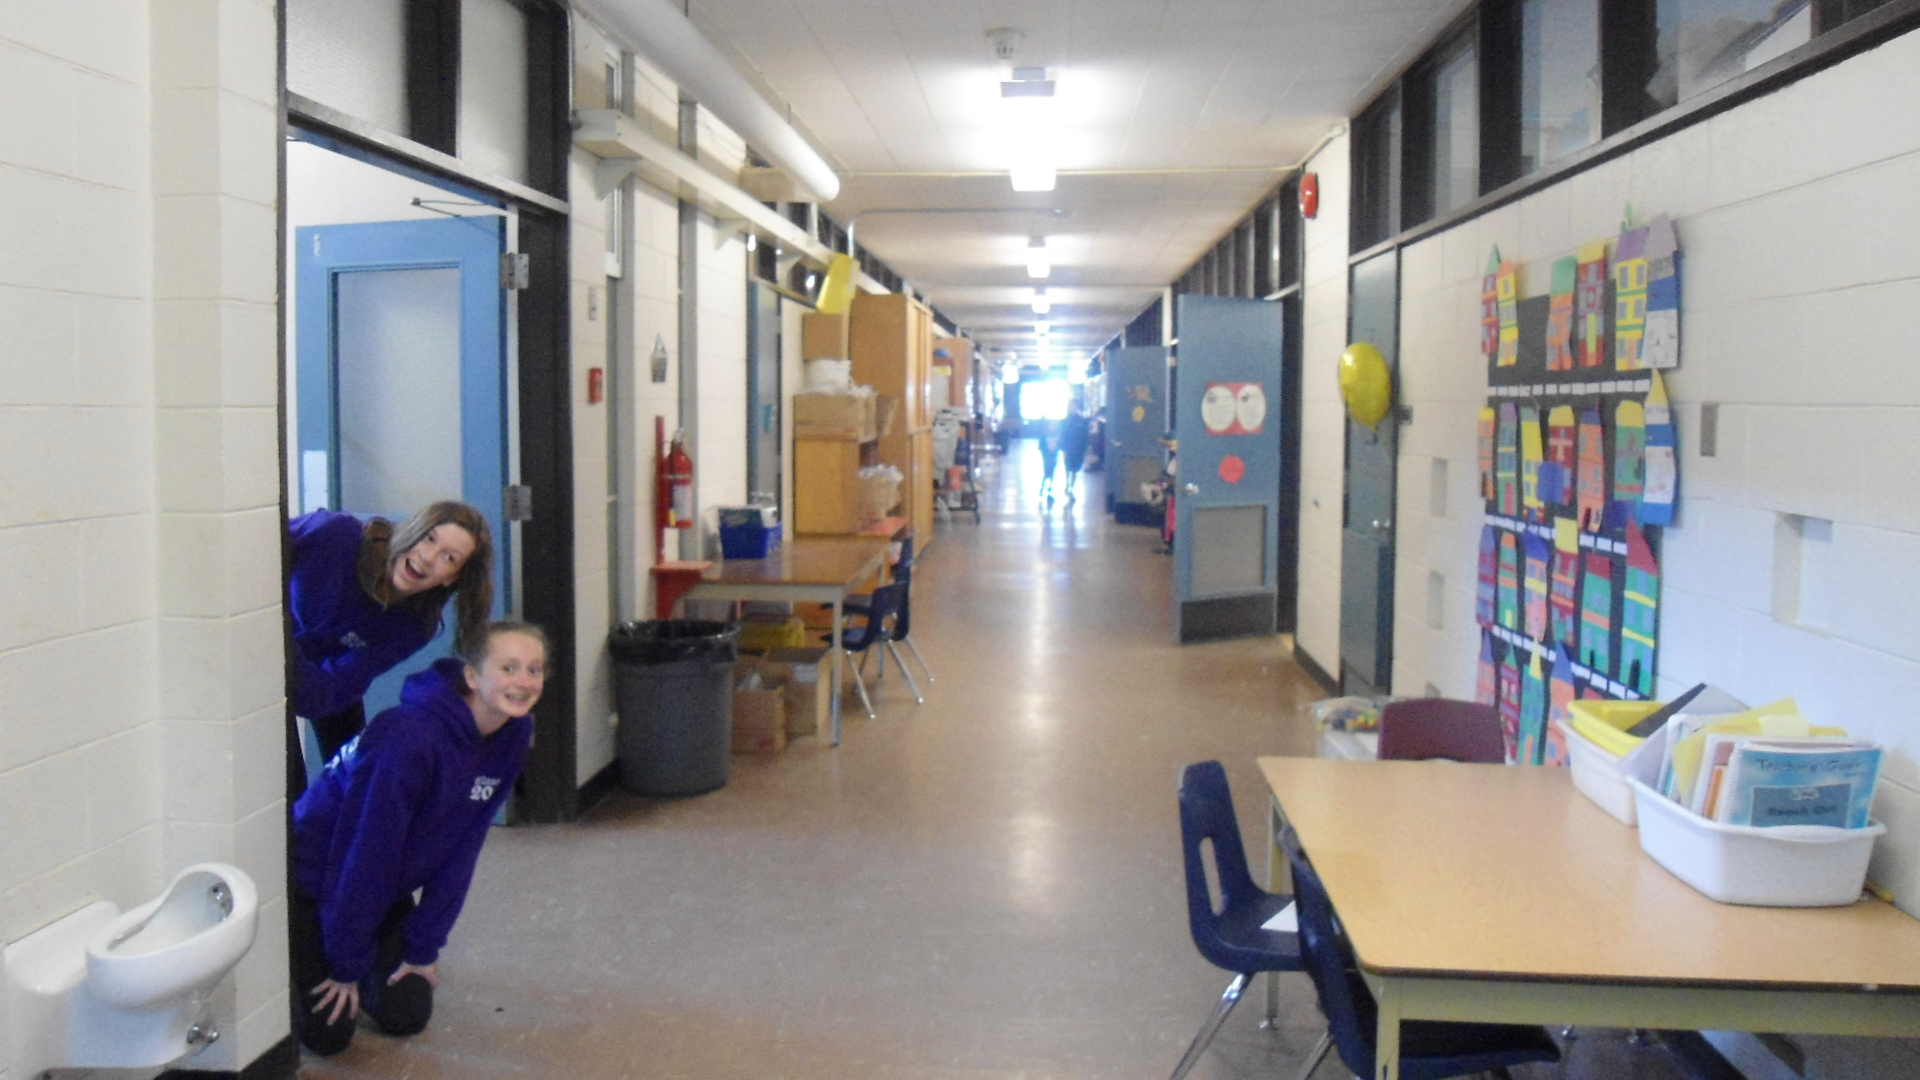 Cleveland Elementary School Tour in Photos (Our First And ...